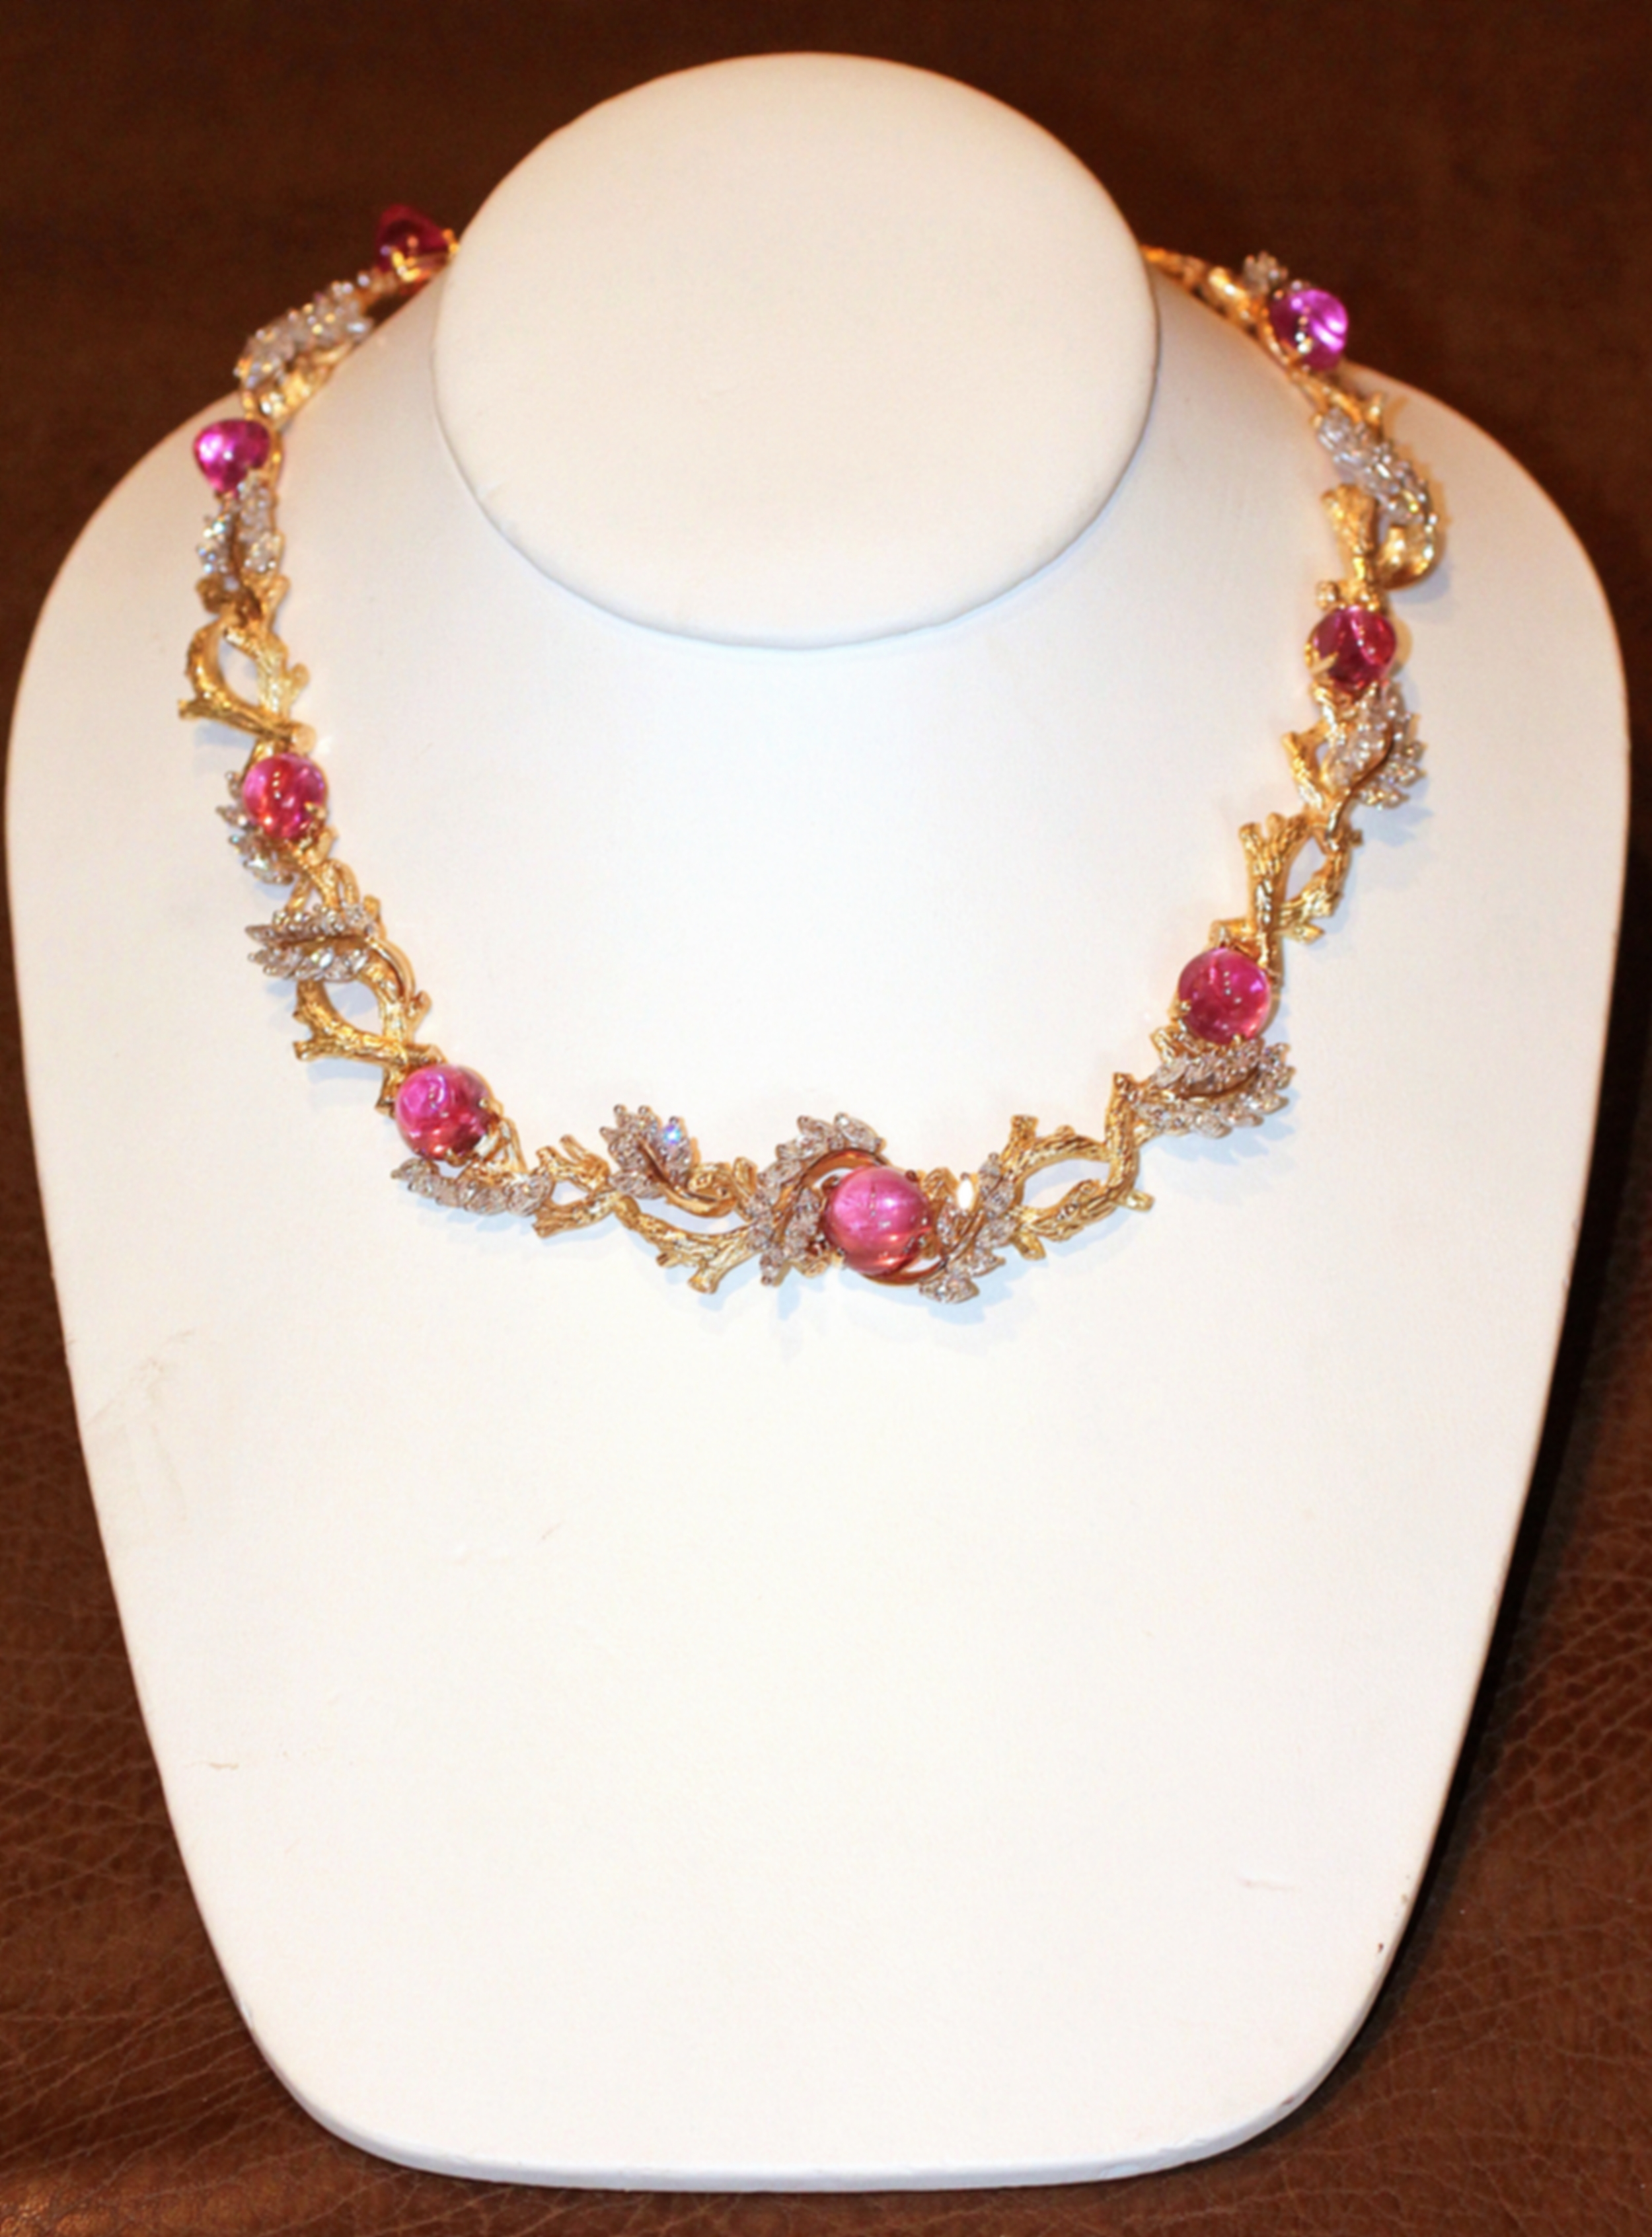 """Charles Vaillant - """"Branches"""" Necklace"""